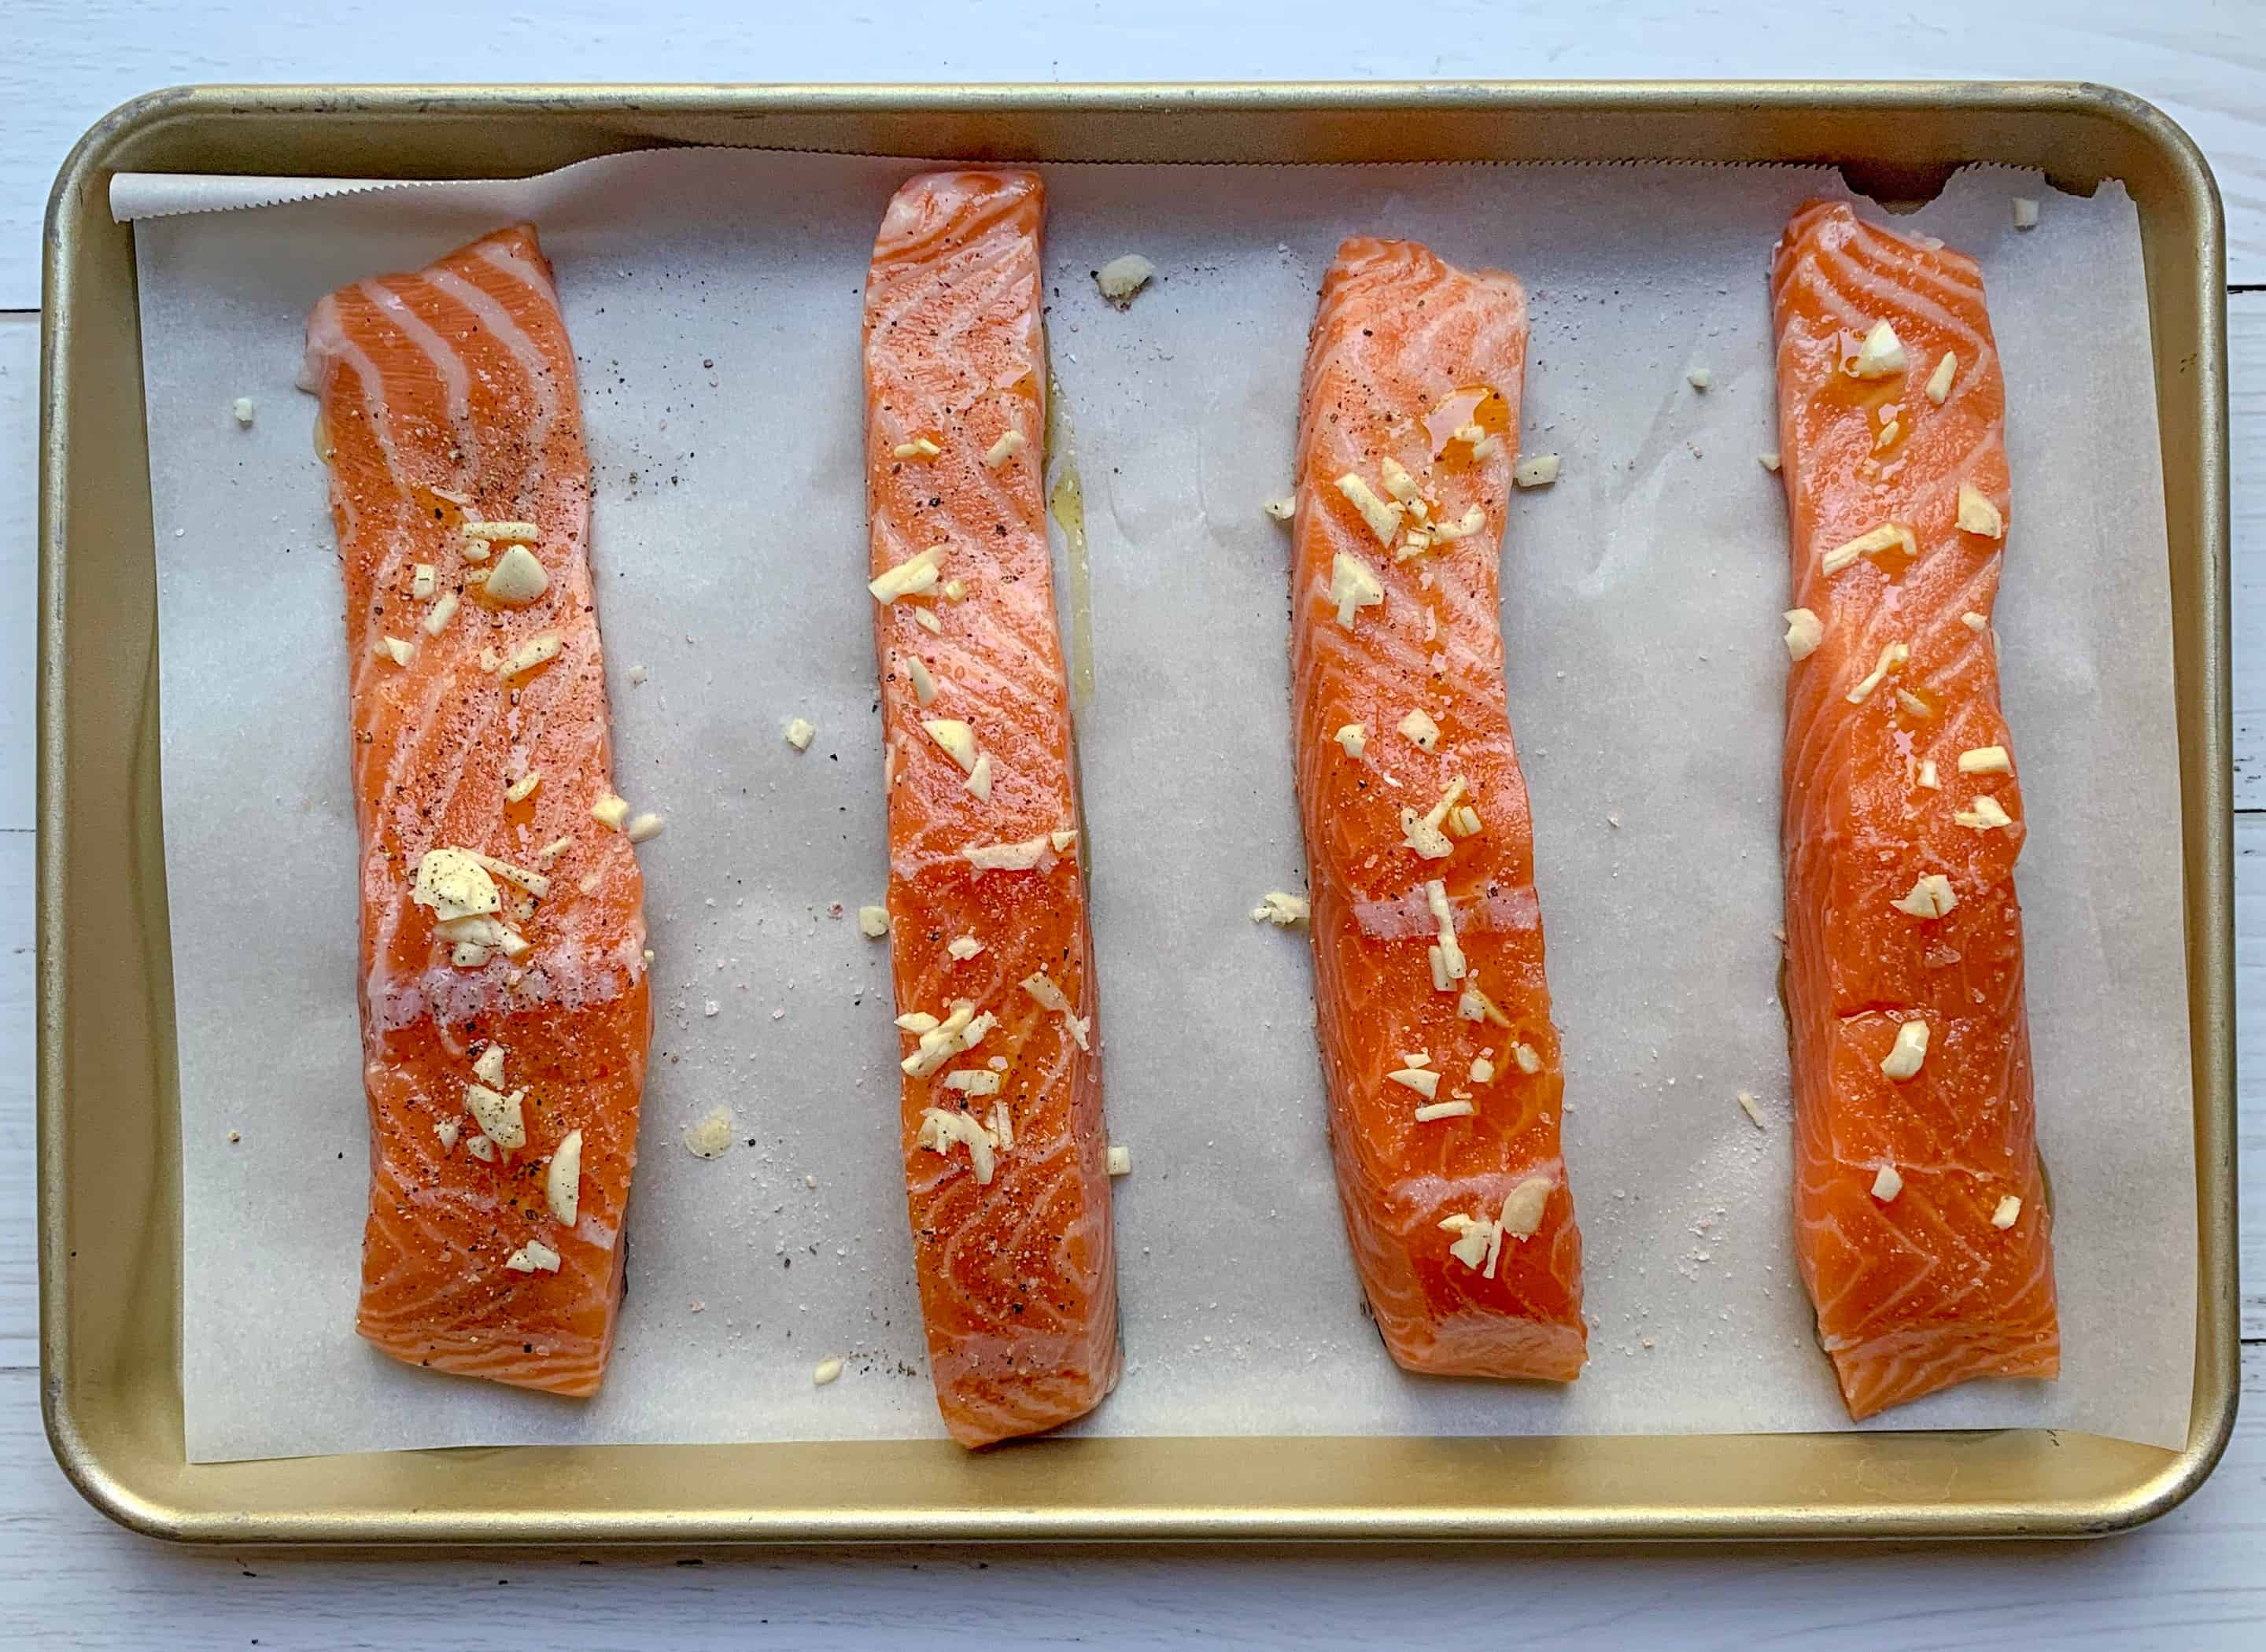 4 uncooked fillets of salmon on parchment paper lined baking sheet